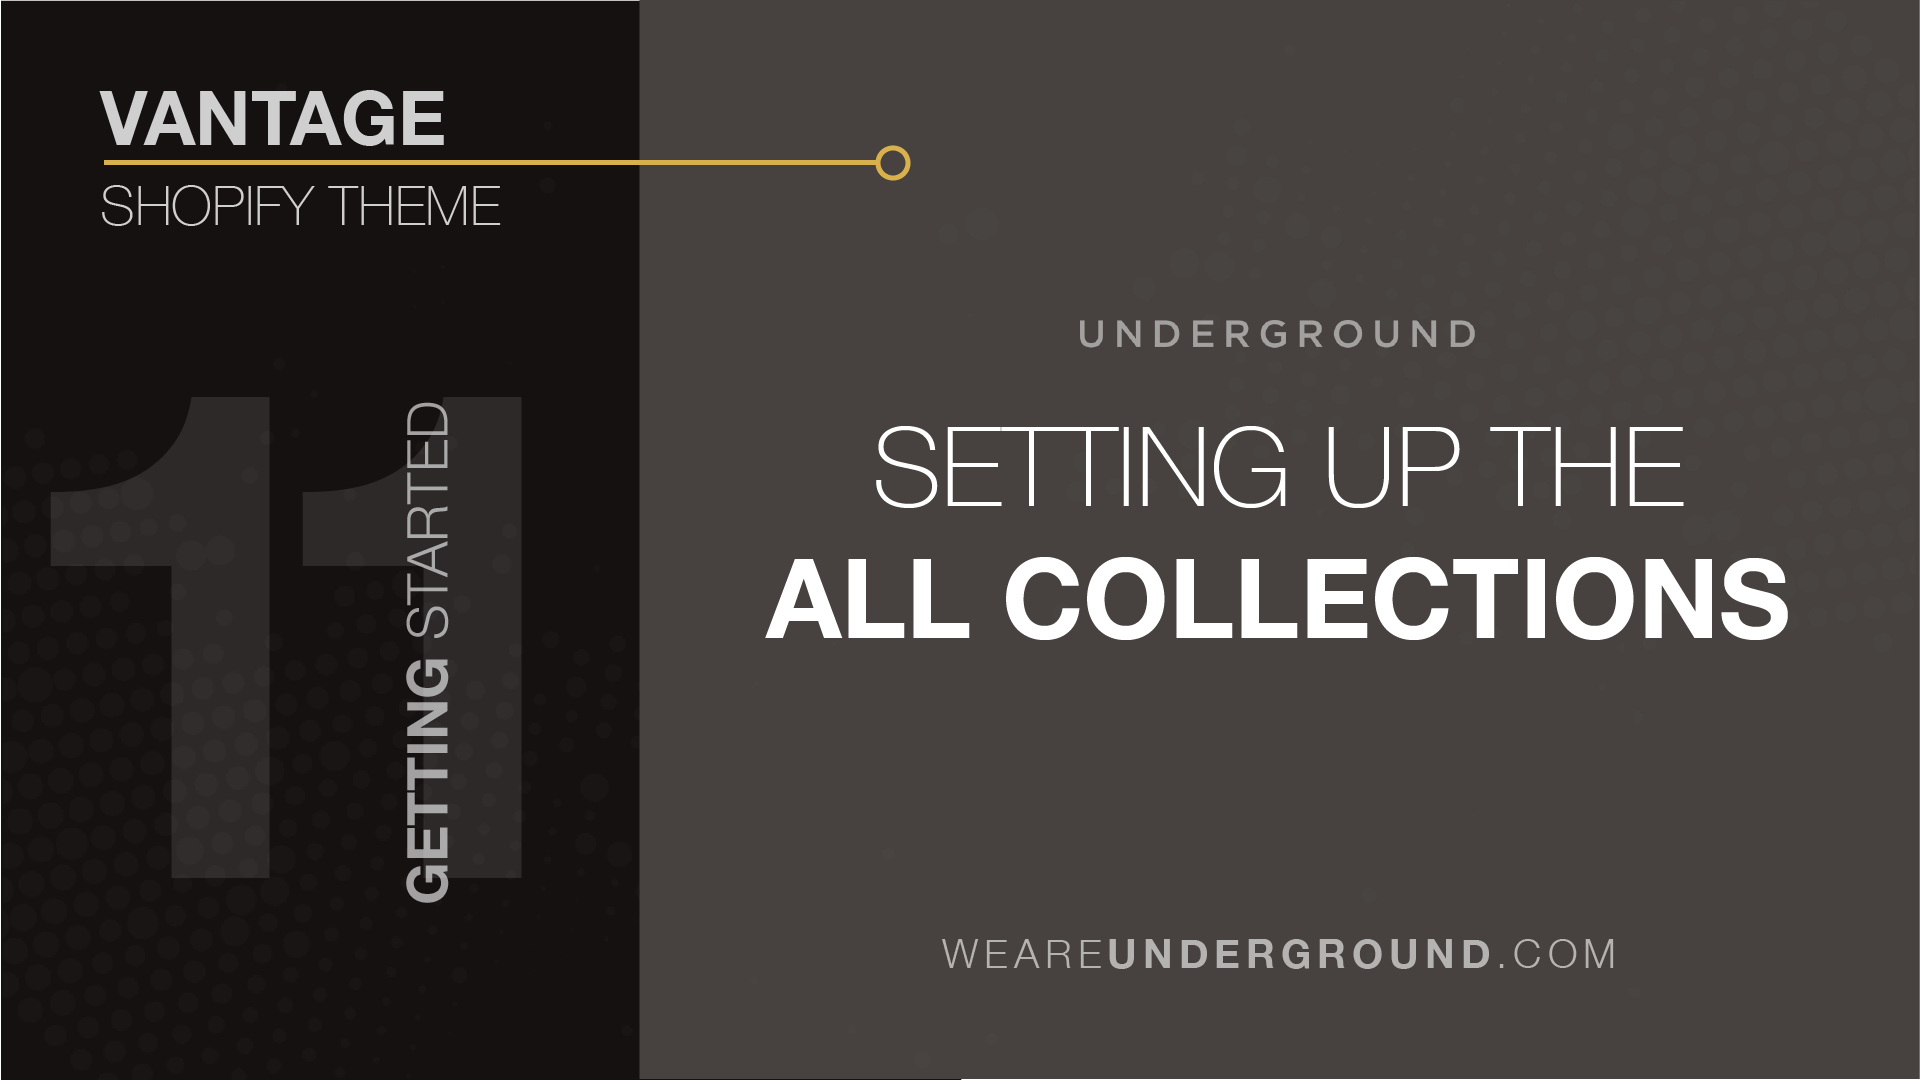 100c1b2b745a 11. Vantage Theme: Setting up the All Collections Page - We are ...